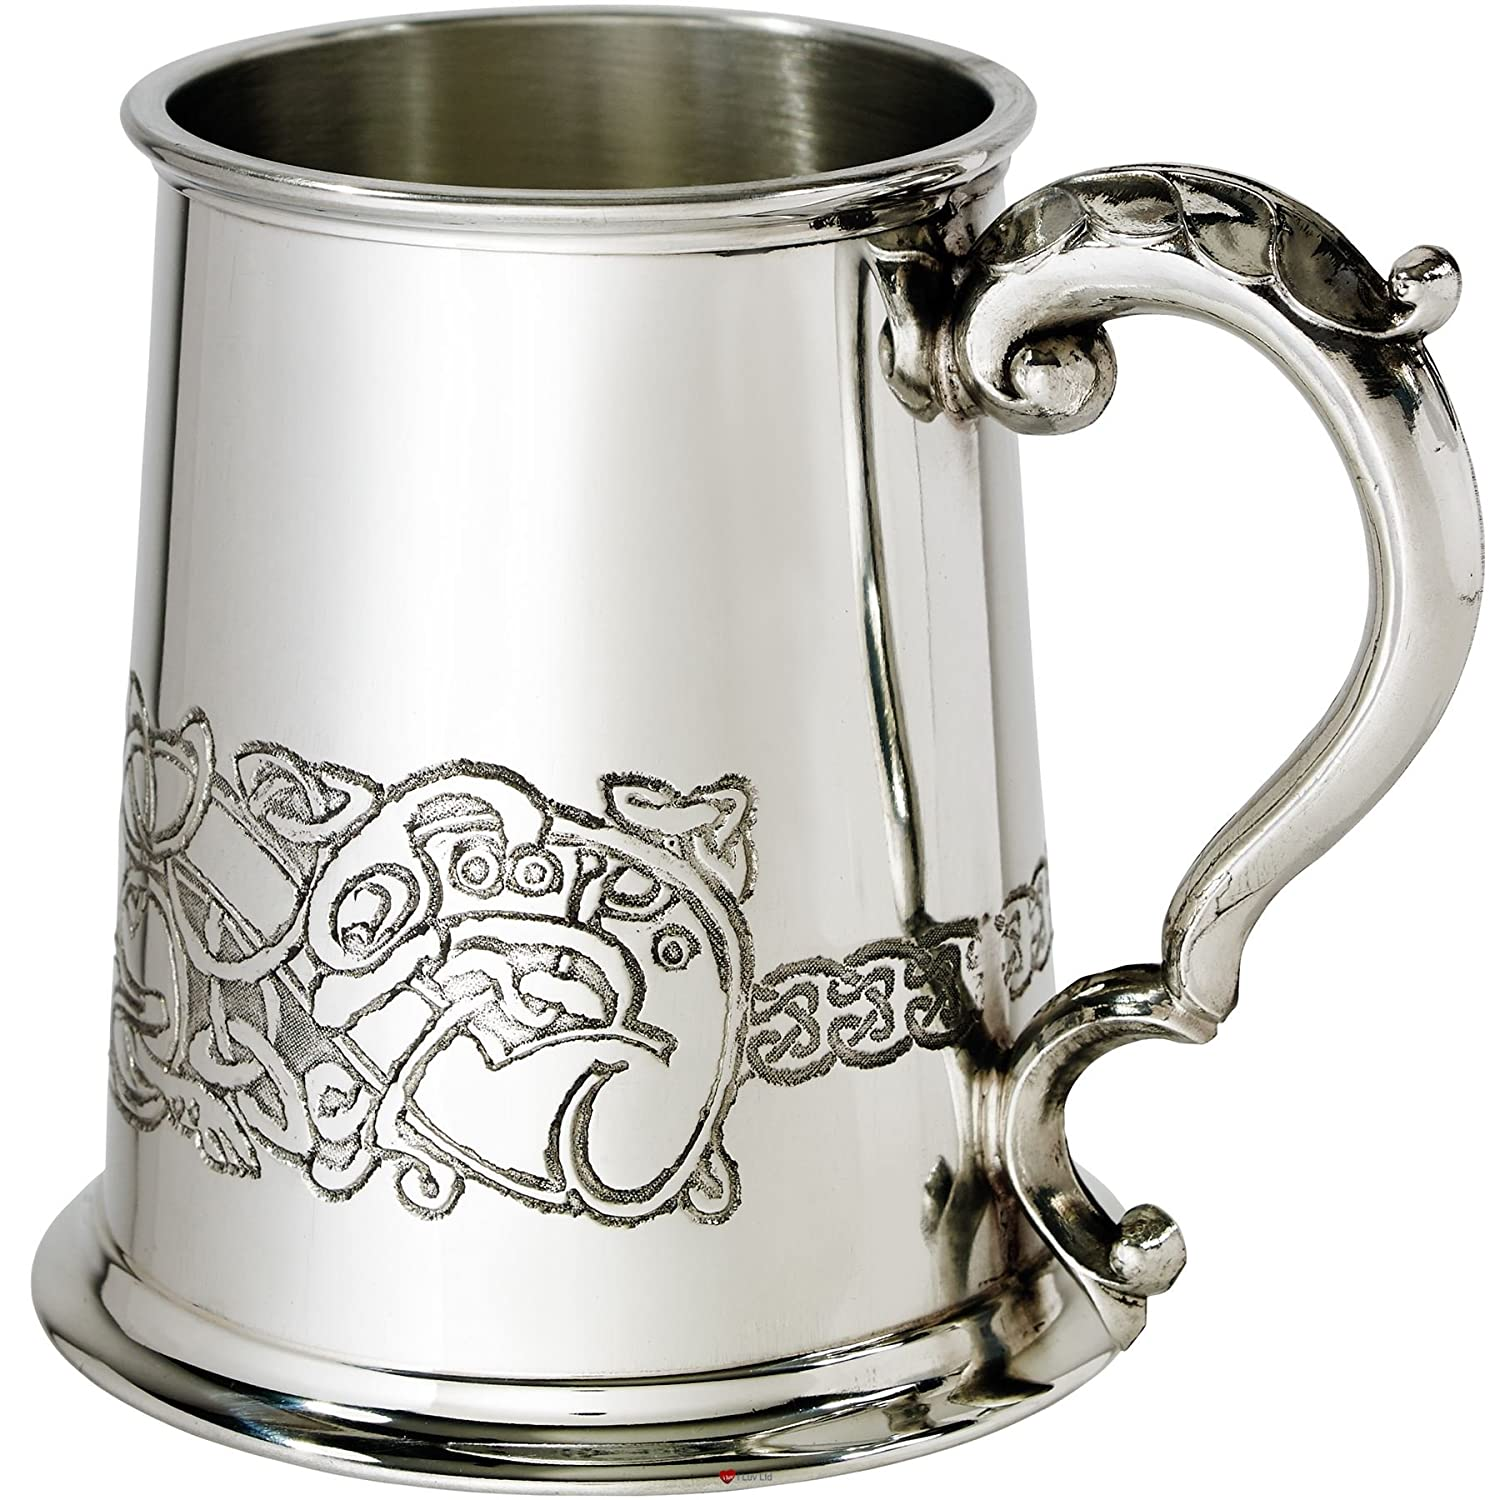 Pewter 1 Pint Tankard Celtic Dragon Fine English Pewter Ornate Handle Ideal For Engraving